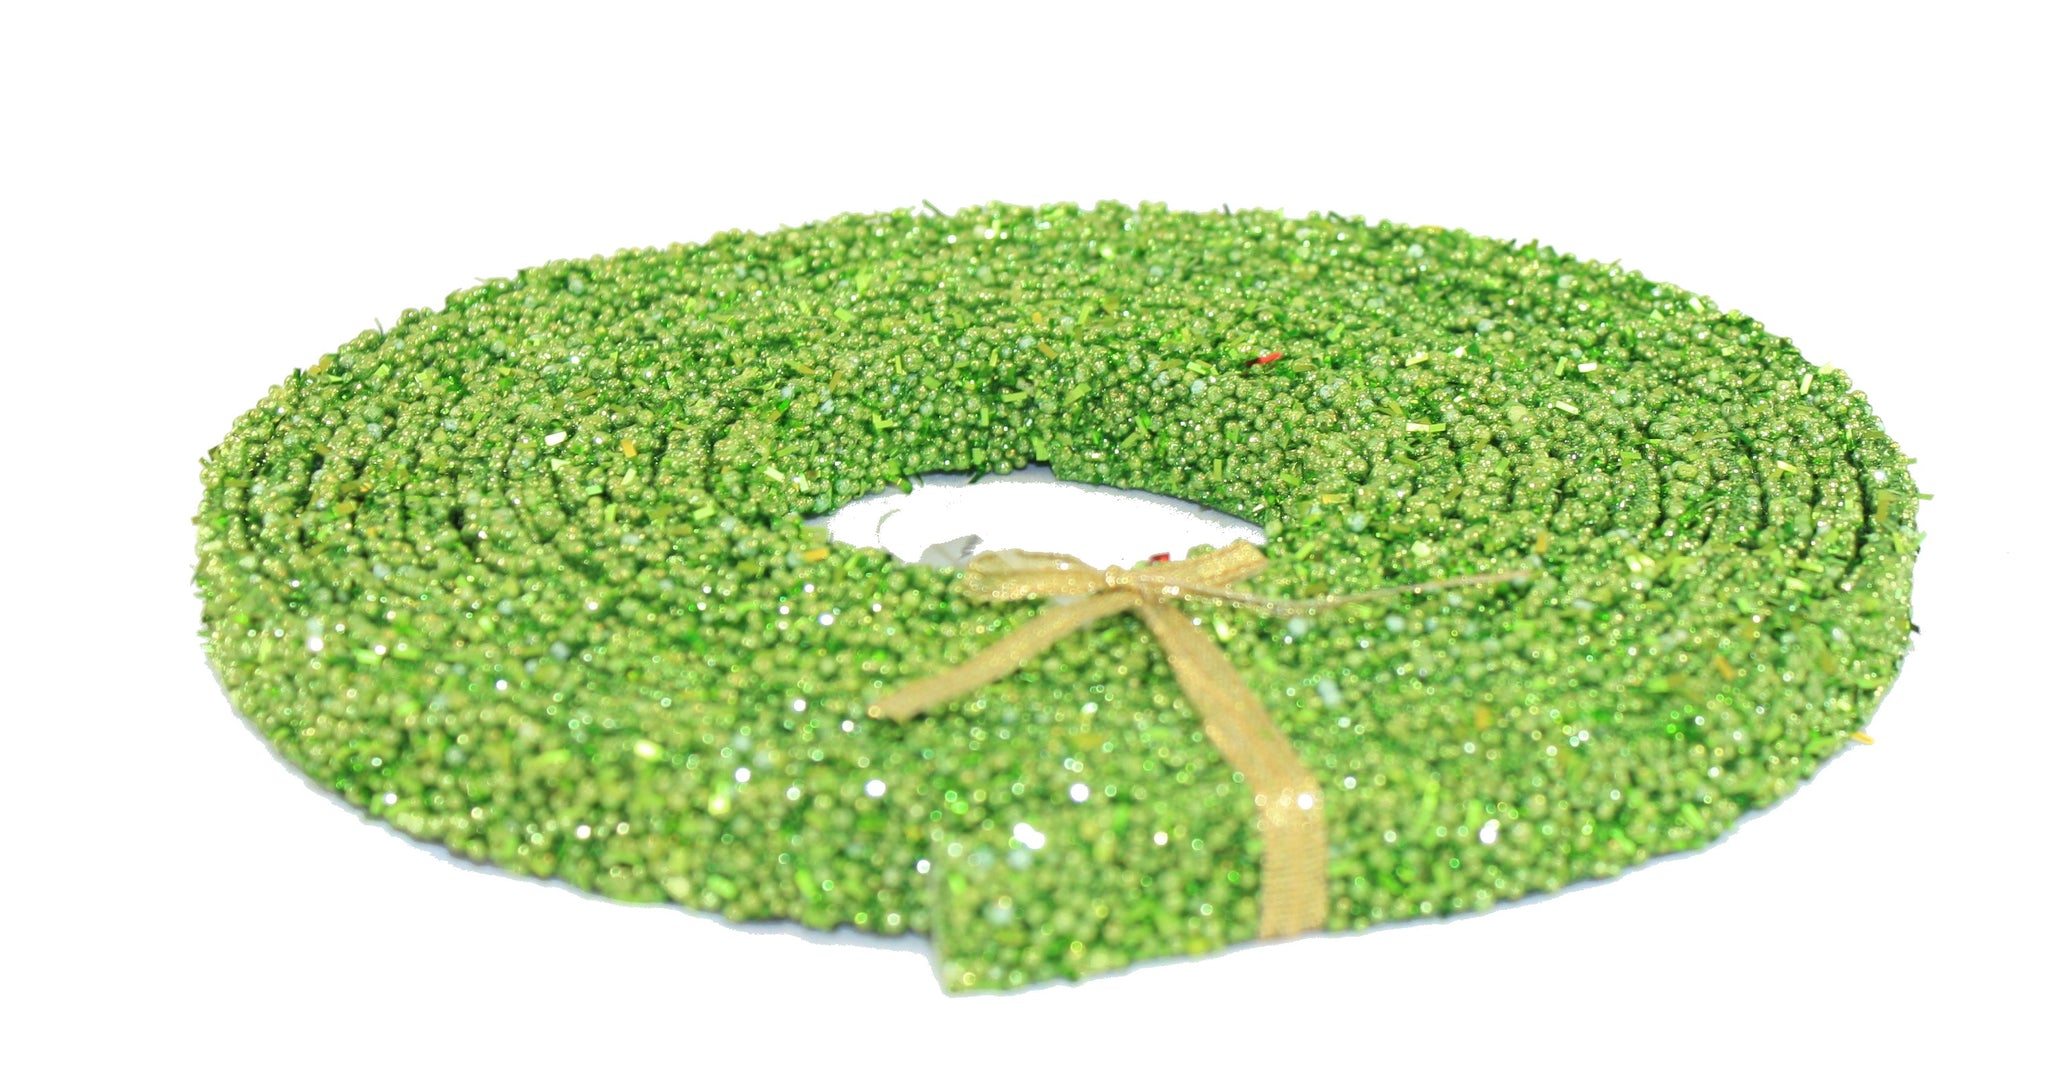 Regency 15 Foot Plastic Beaded Glitter Strap Garland (Apple Green)